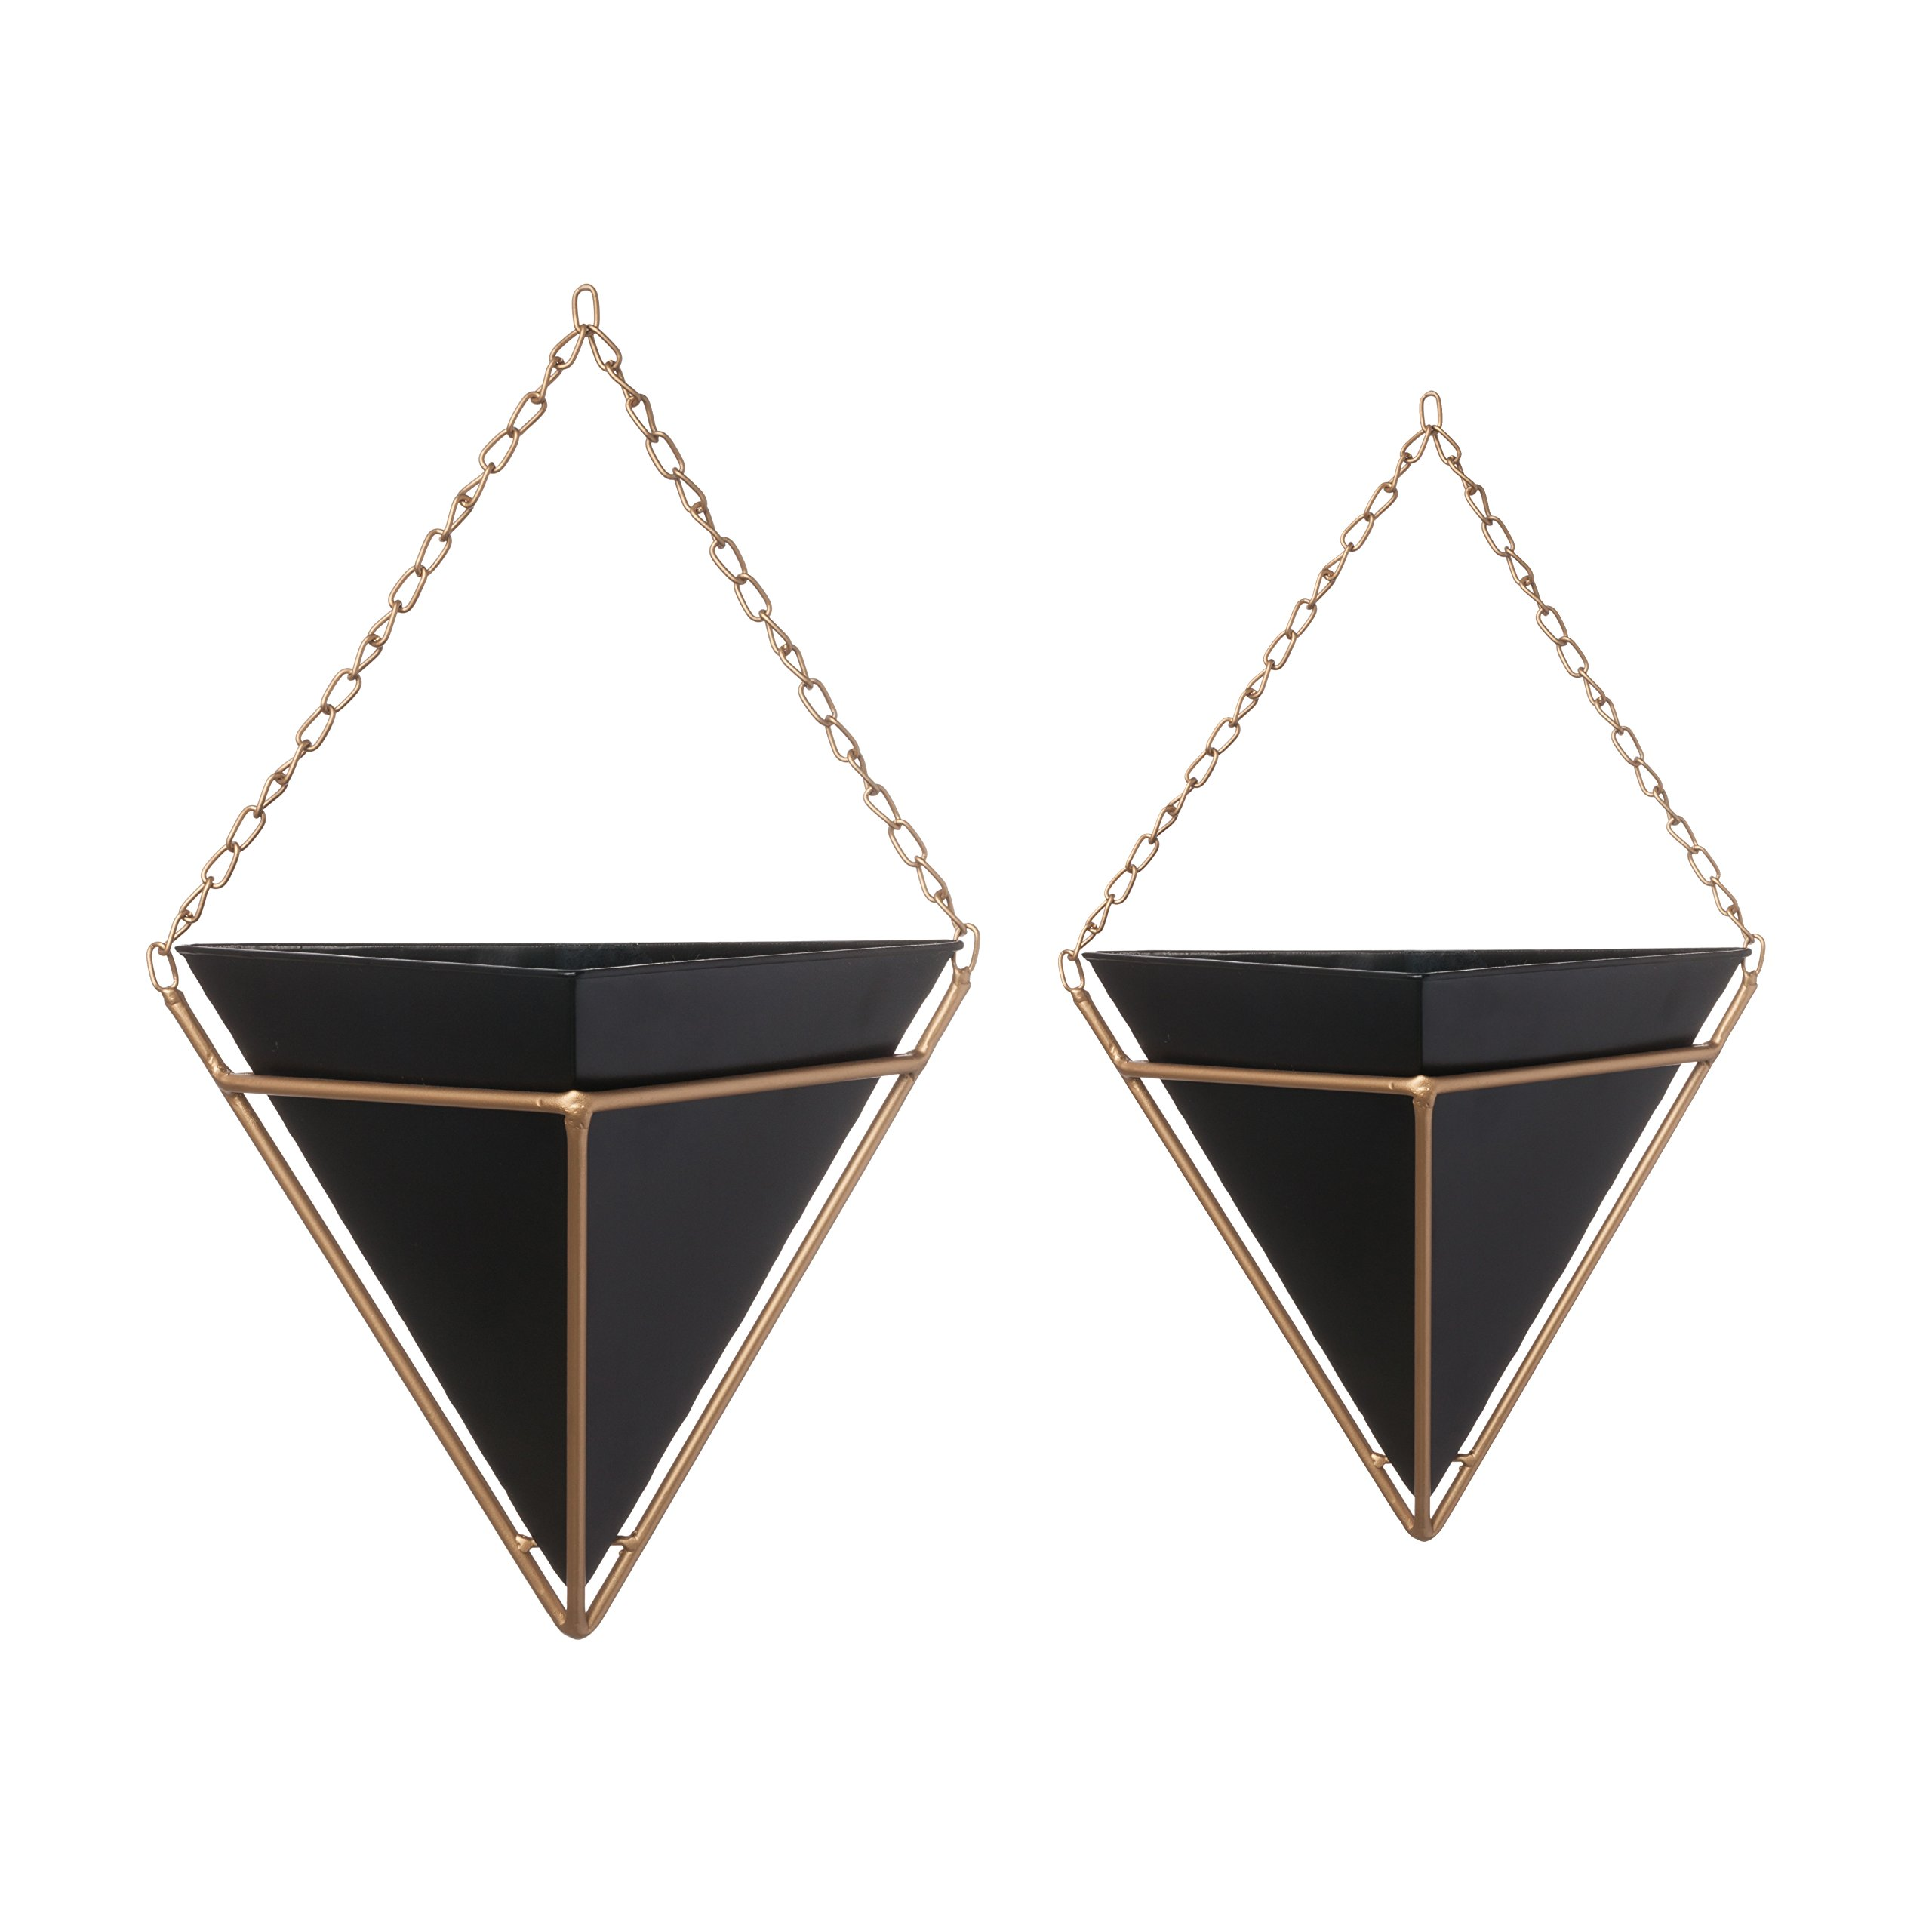 Pine & Paint Wall Pocket Hanging Planters Set of 2 Triangular with Gold Chain & Frame (Black) by Pine & Paint